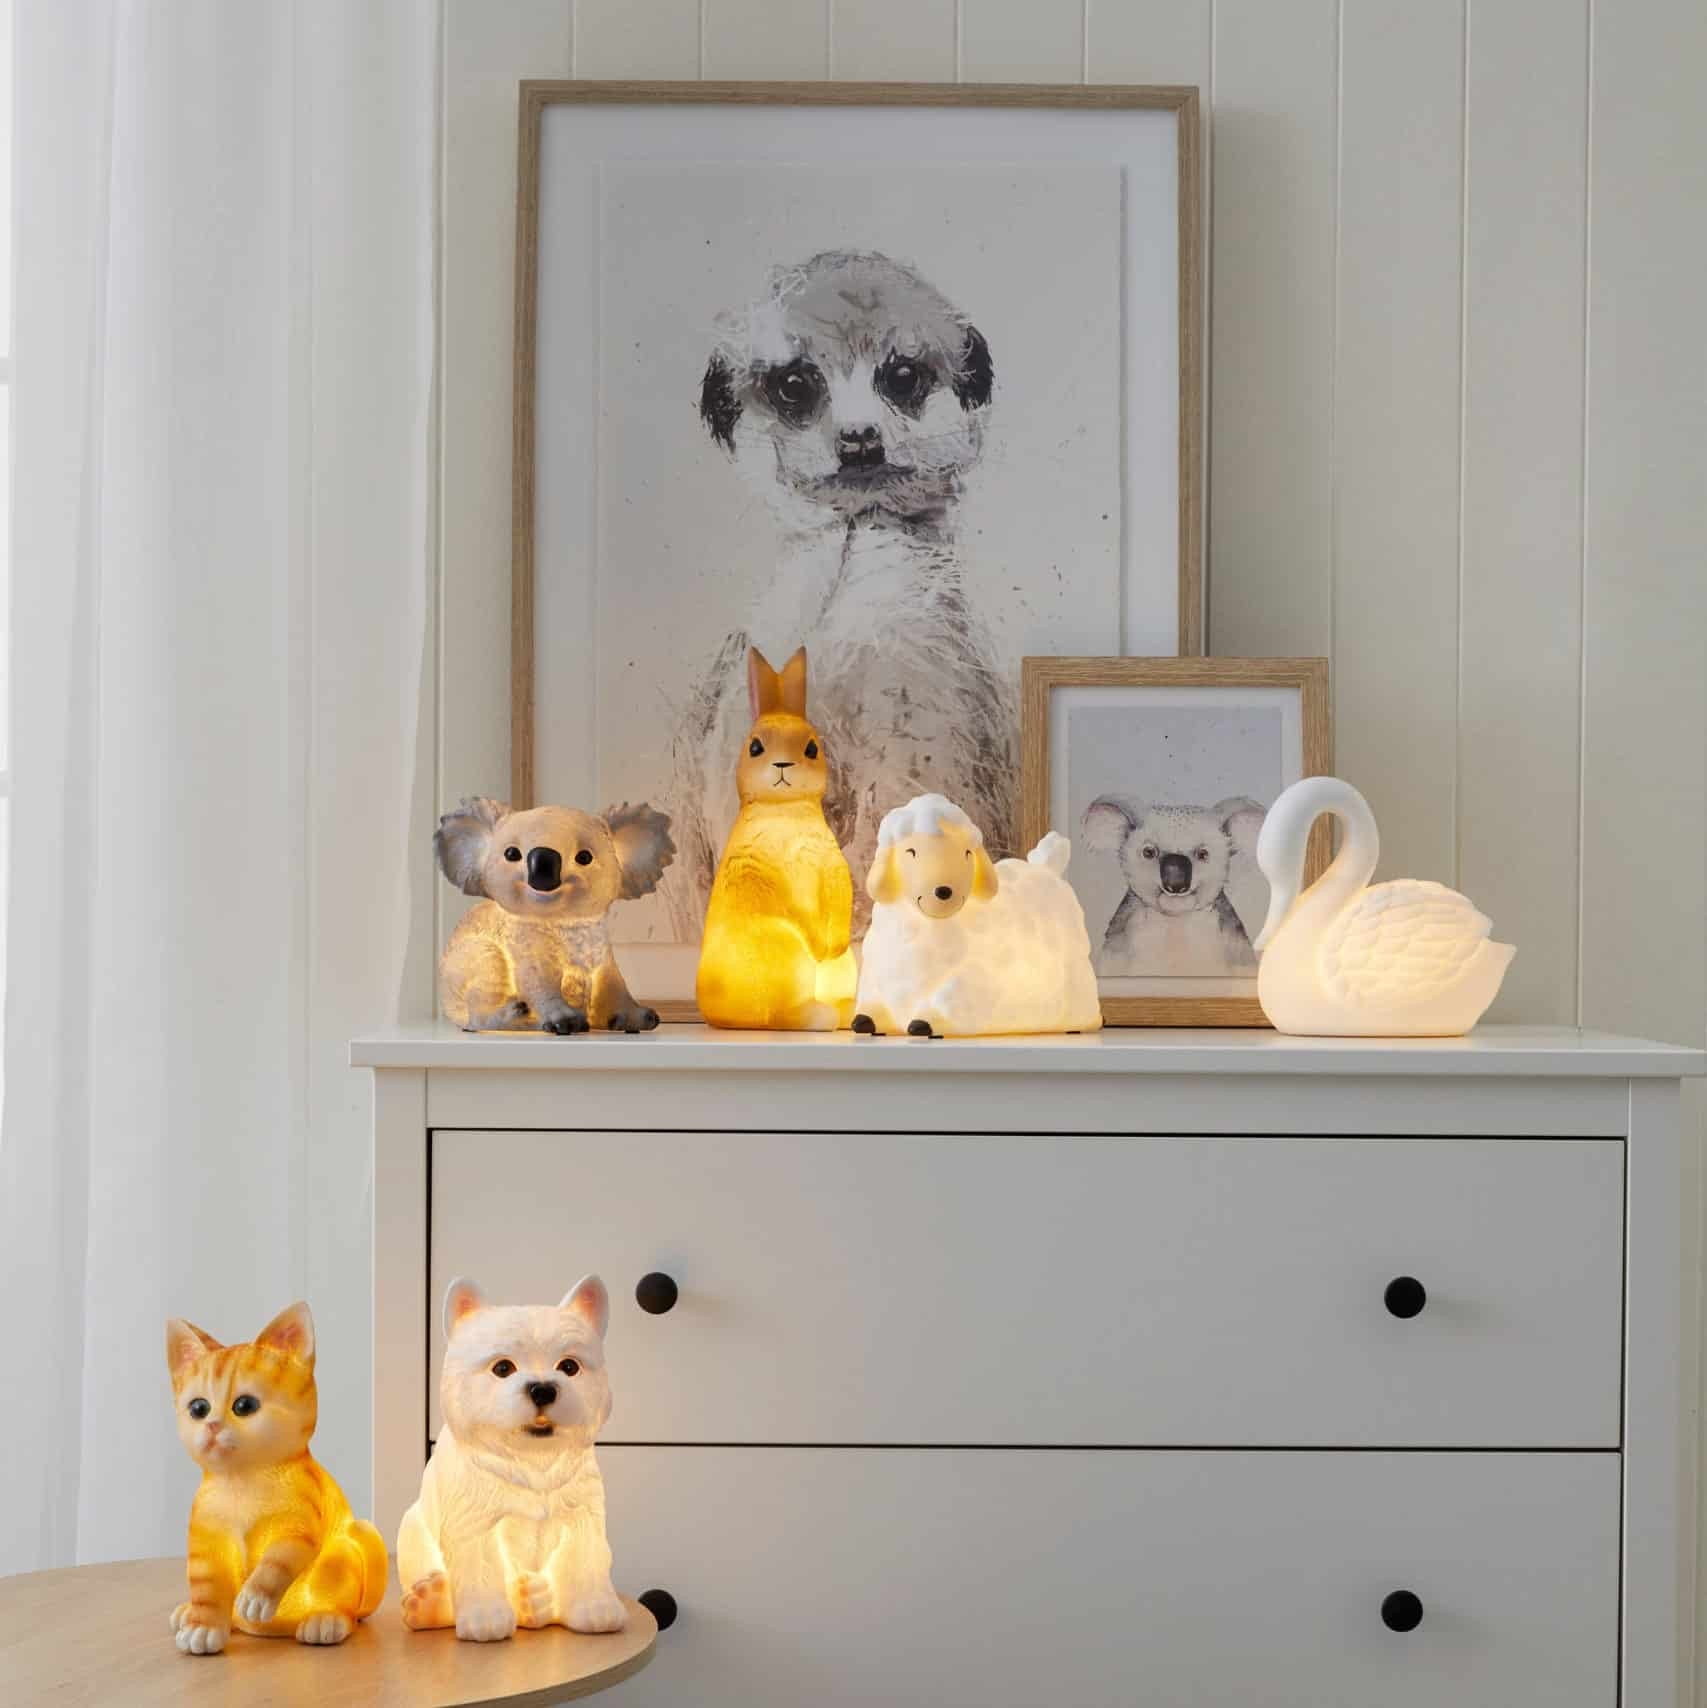 Dog Night Light, Jiggle & Giggle, Night Light - Sticky Fingers Children's Boutique, Niddrie